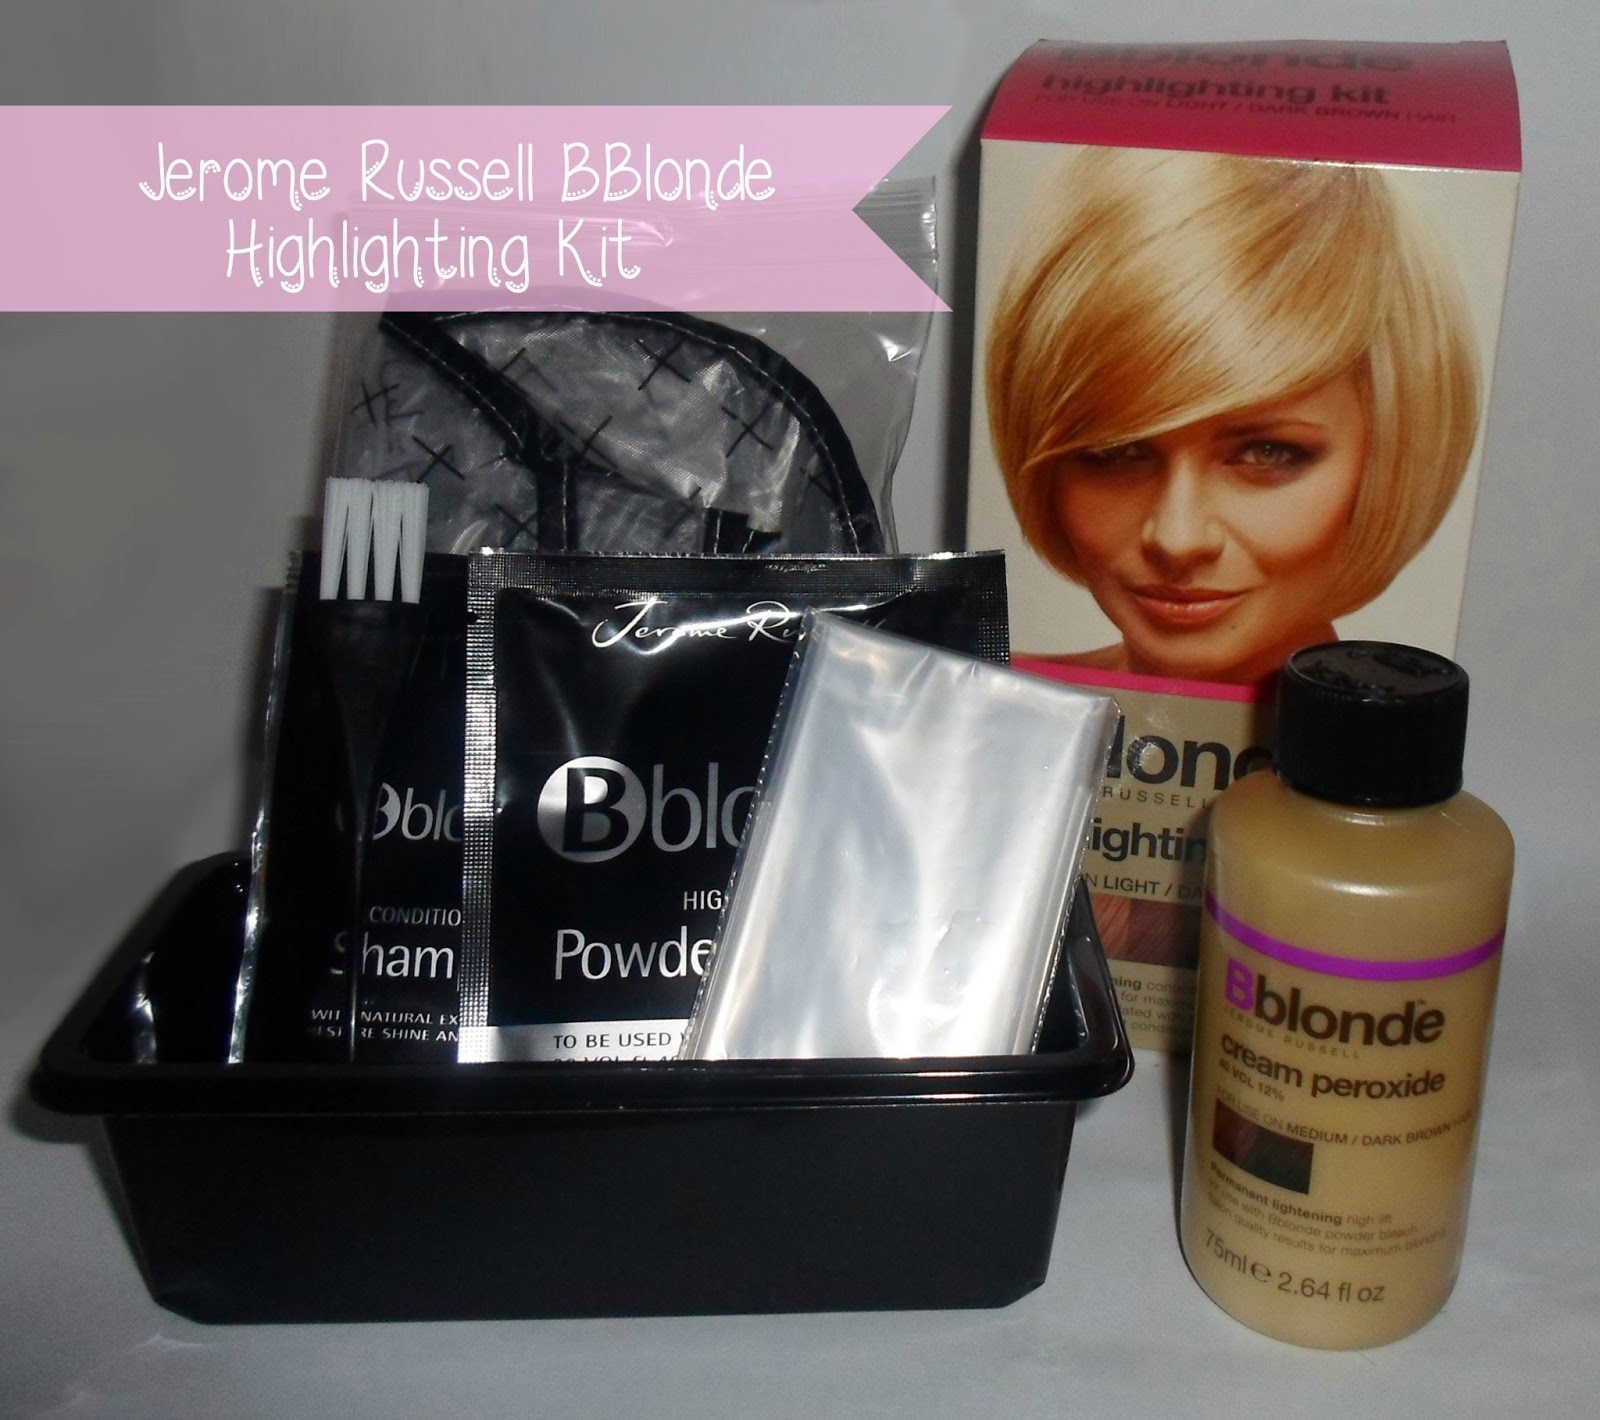 Springsummer highlights using jerome russell bblonde highlighting springsummer highlights using jerome russell bblonde highlighting kit solutioingenieria Choice Image